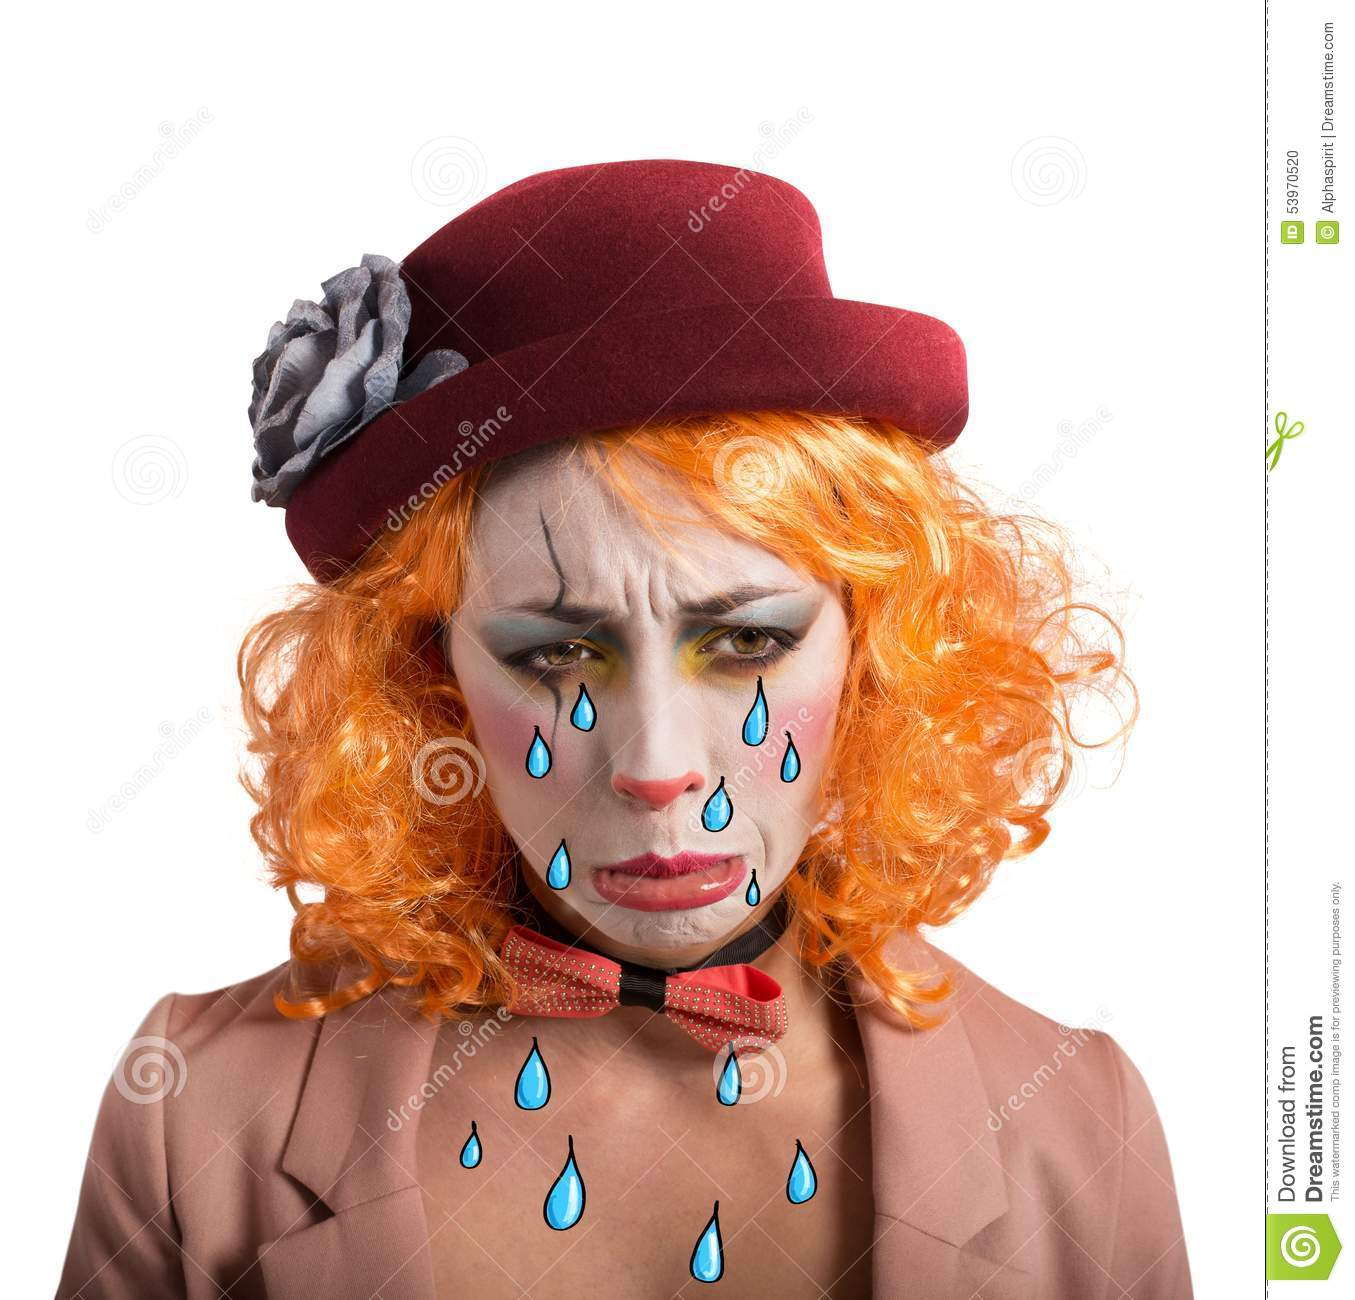 Sad Clown Stock Images Download 2 965 Royalty Free Photos